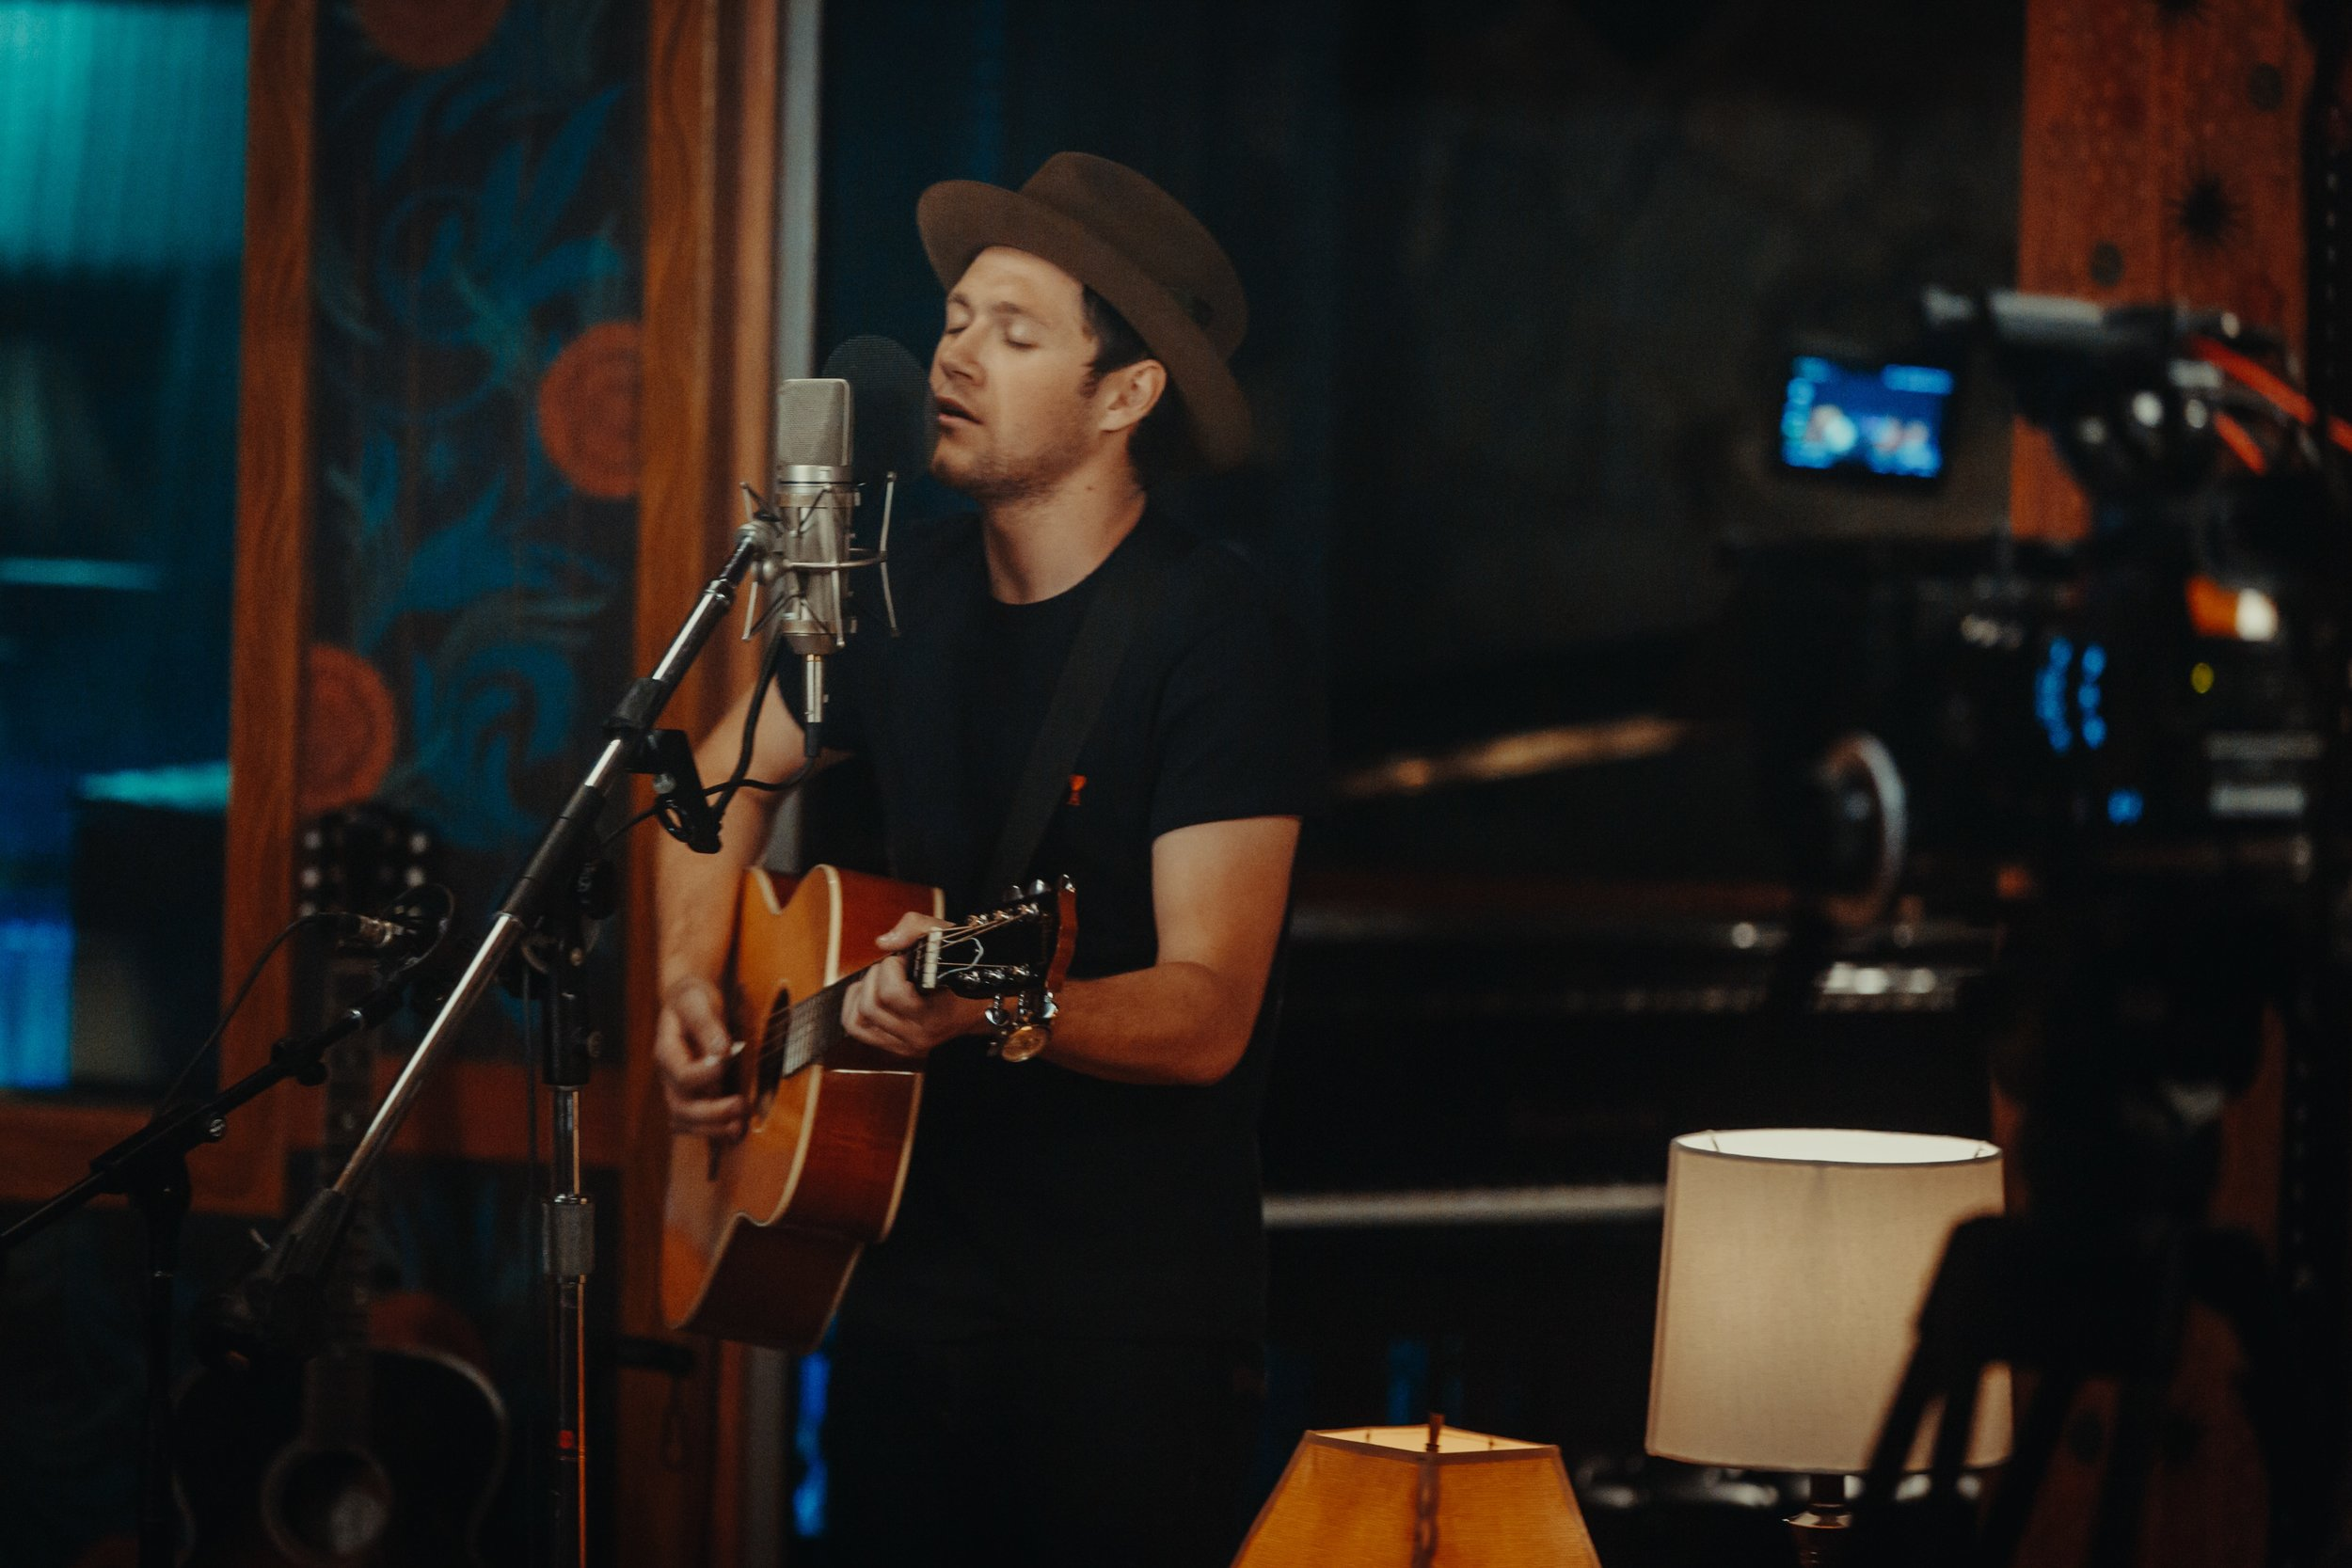 Niall Horan - Publicity Image #5 (Conor McDonnell).jpg